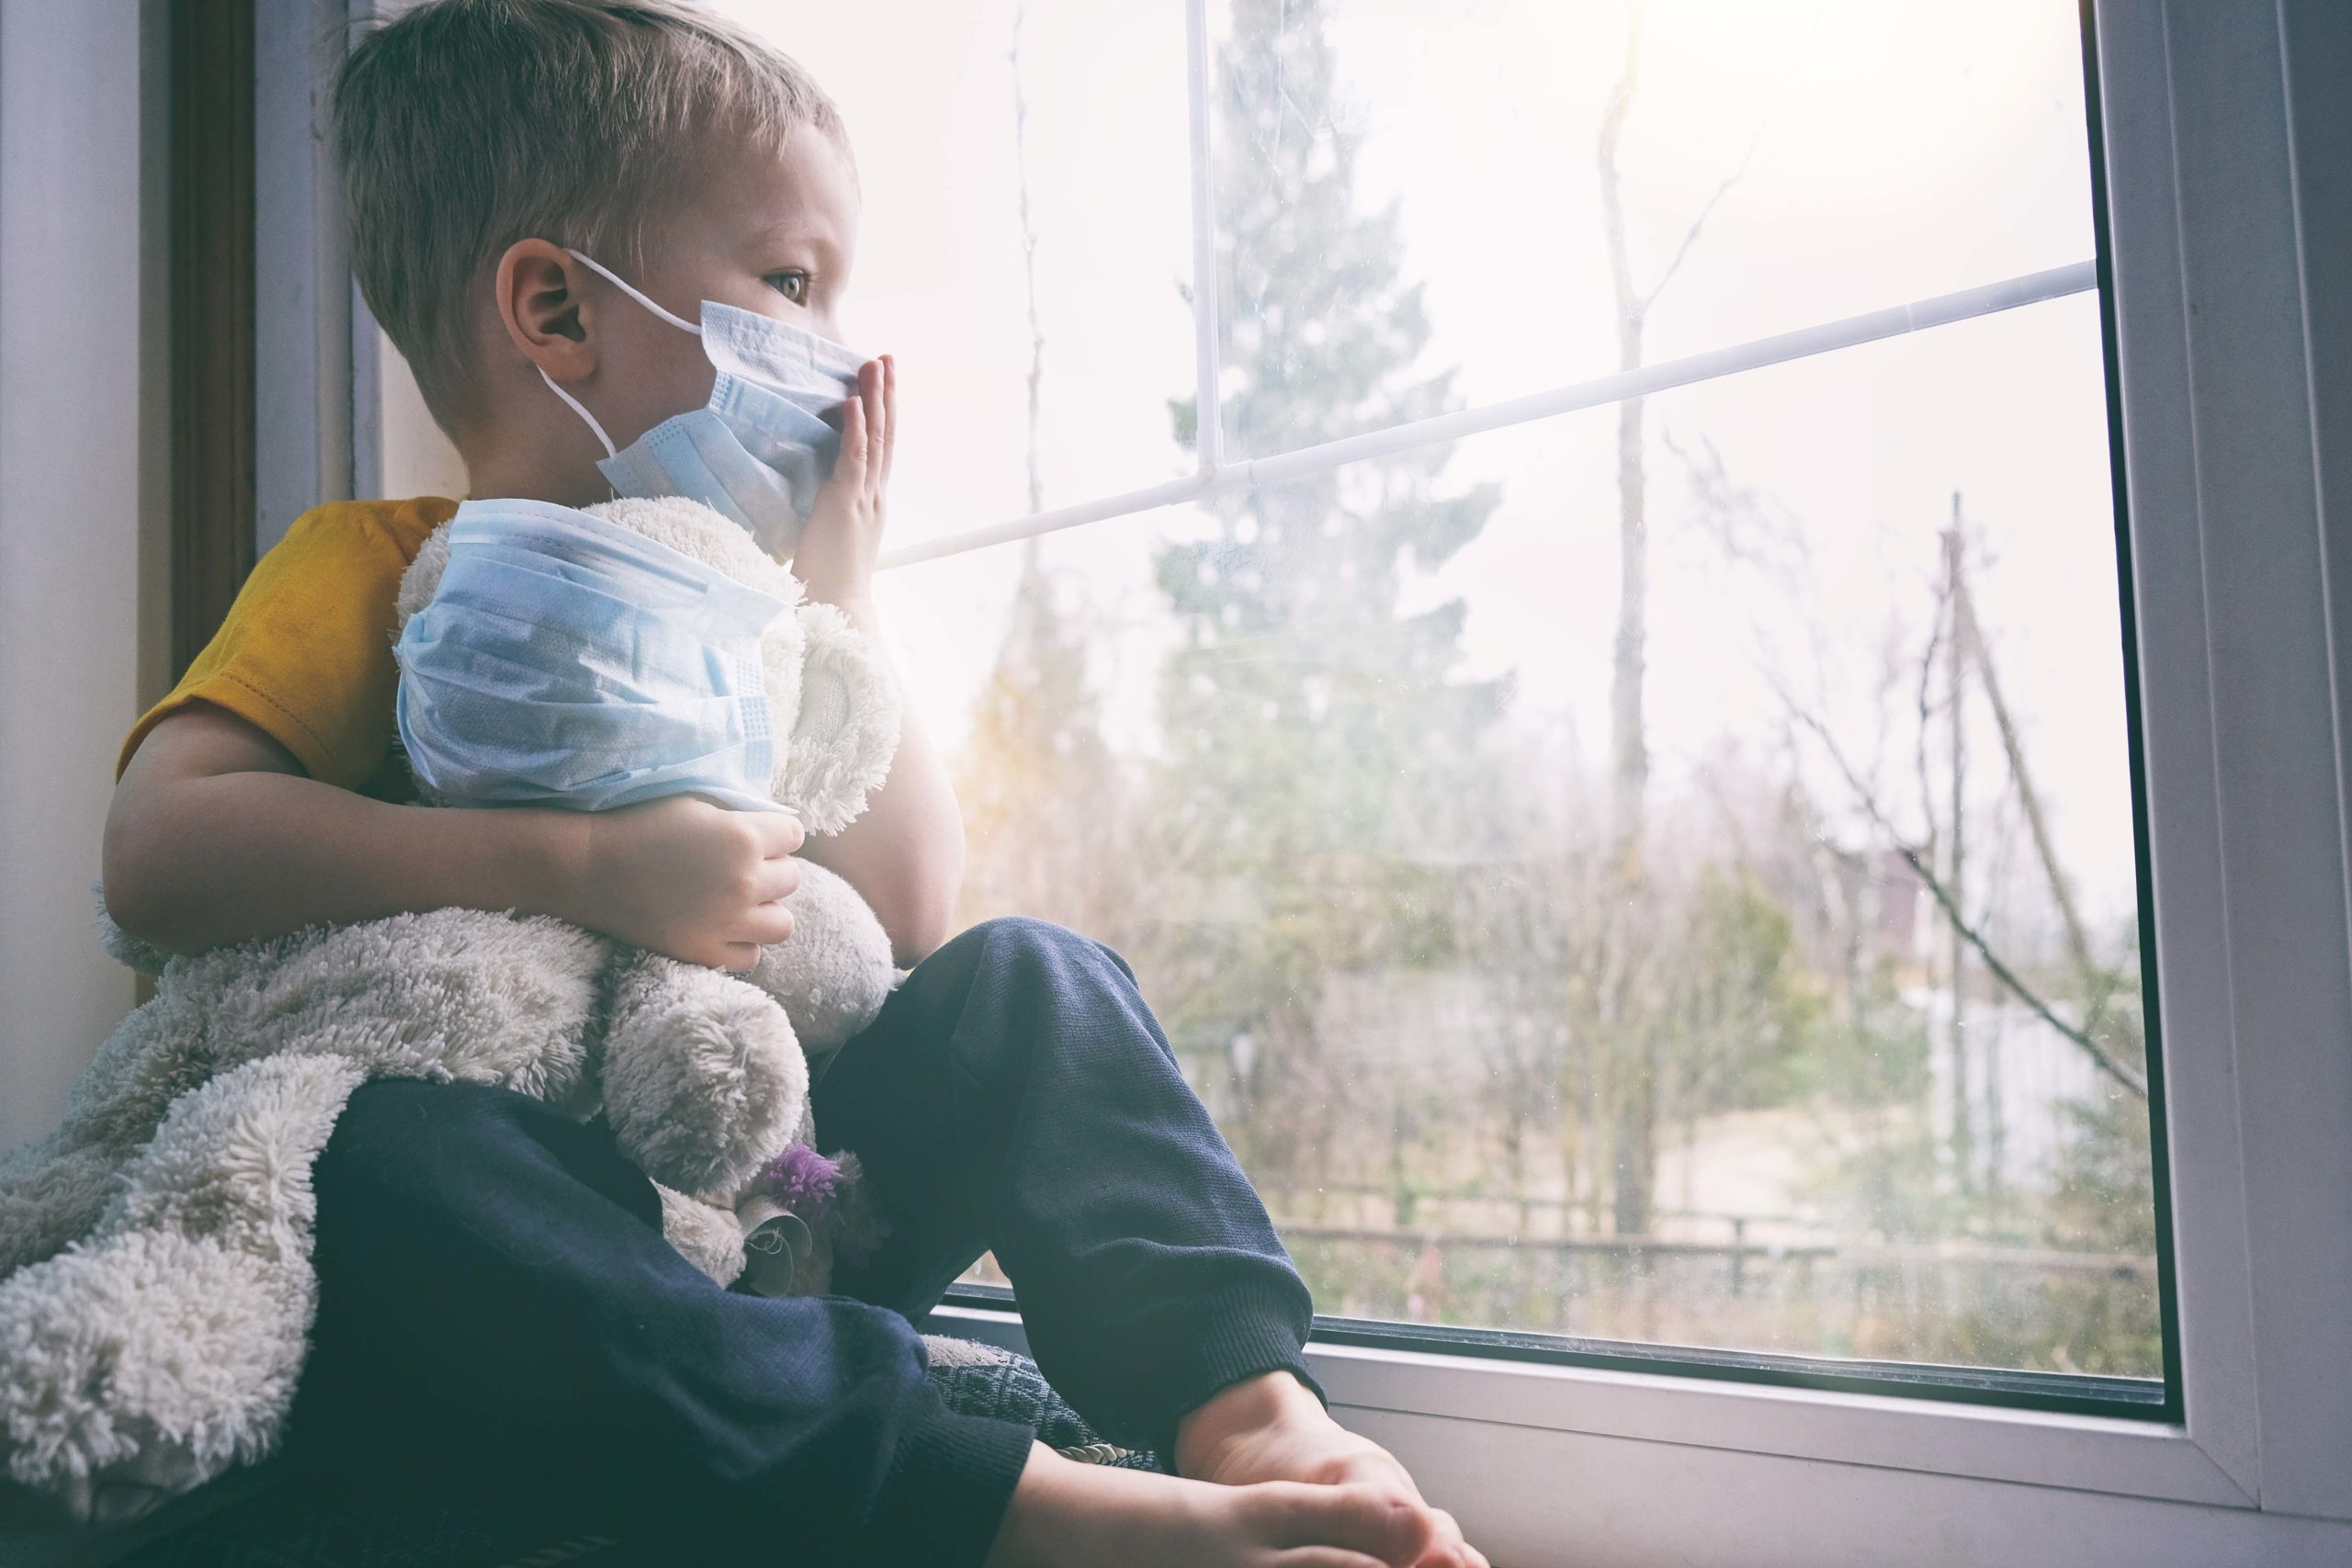 Kids Will Incur Trauma from COVID-19 Pandemic